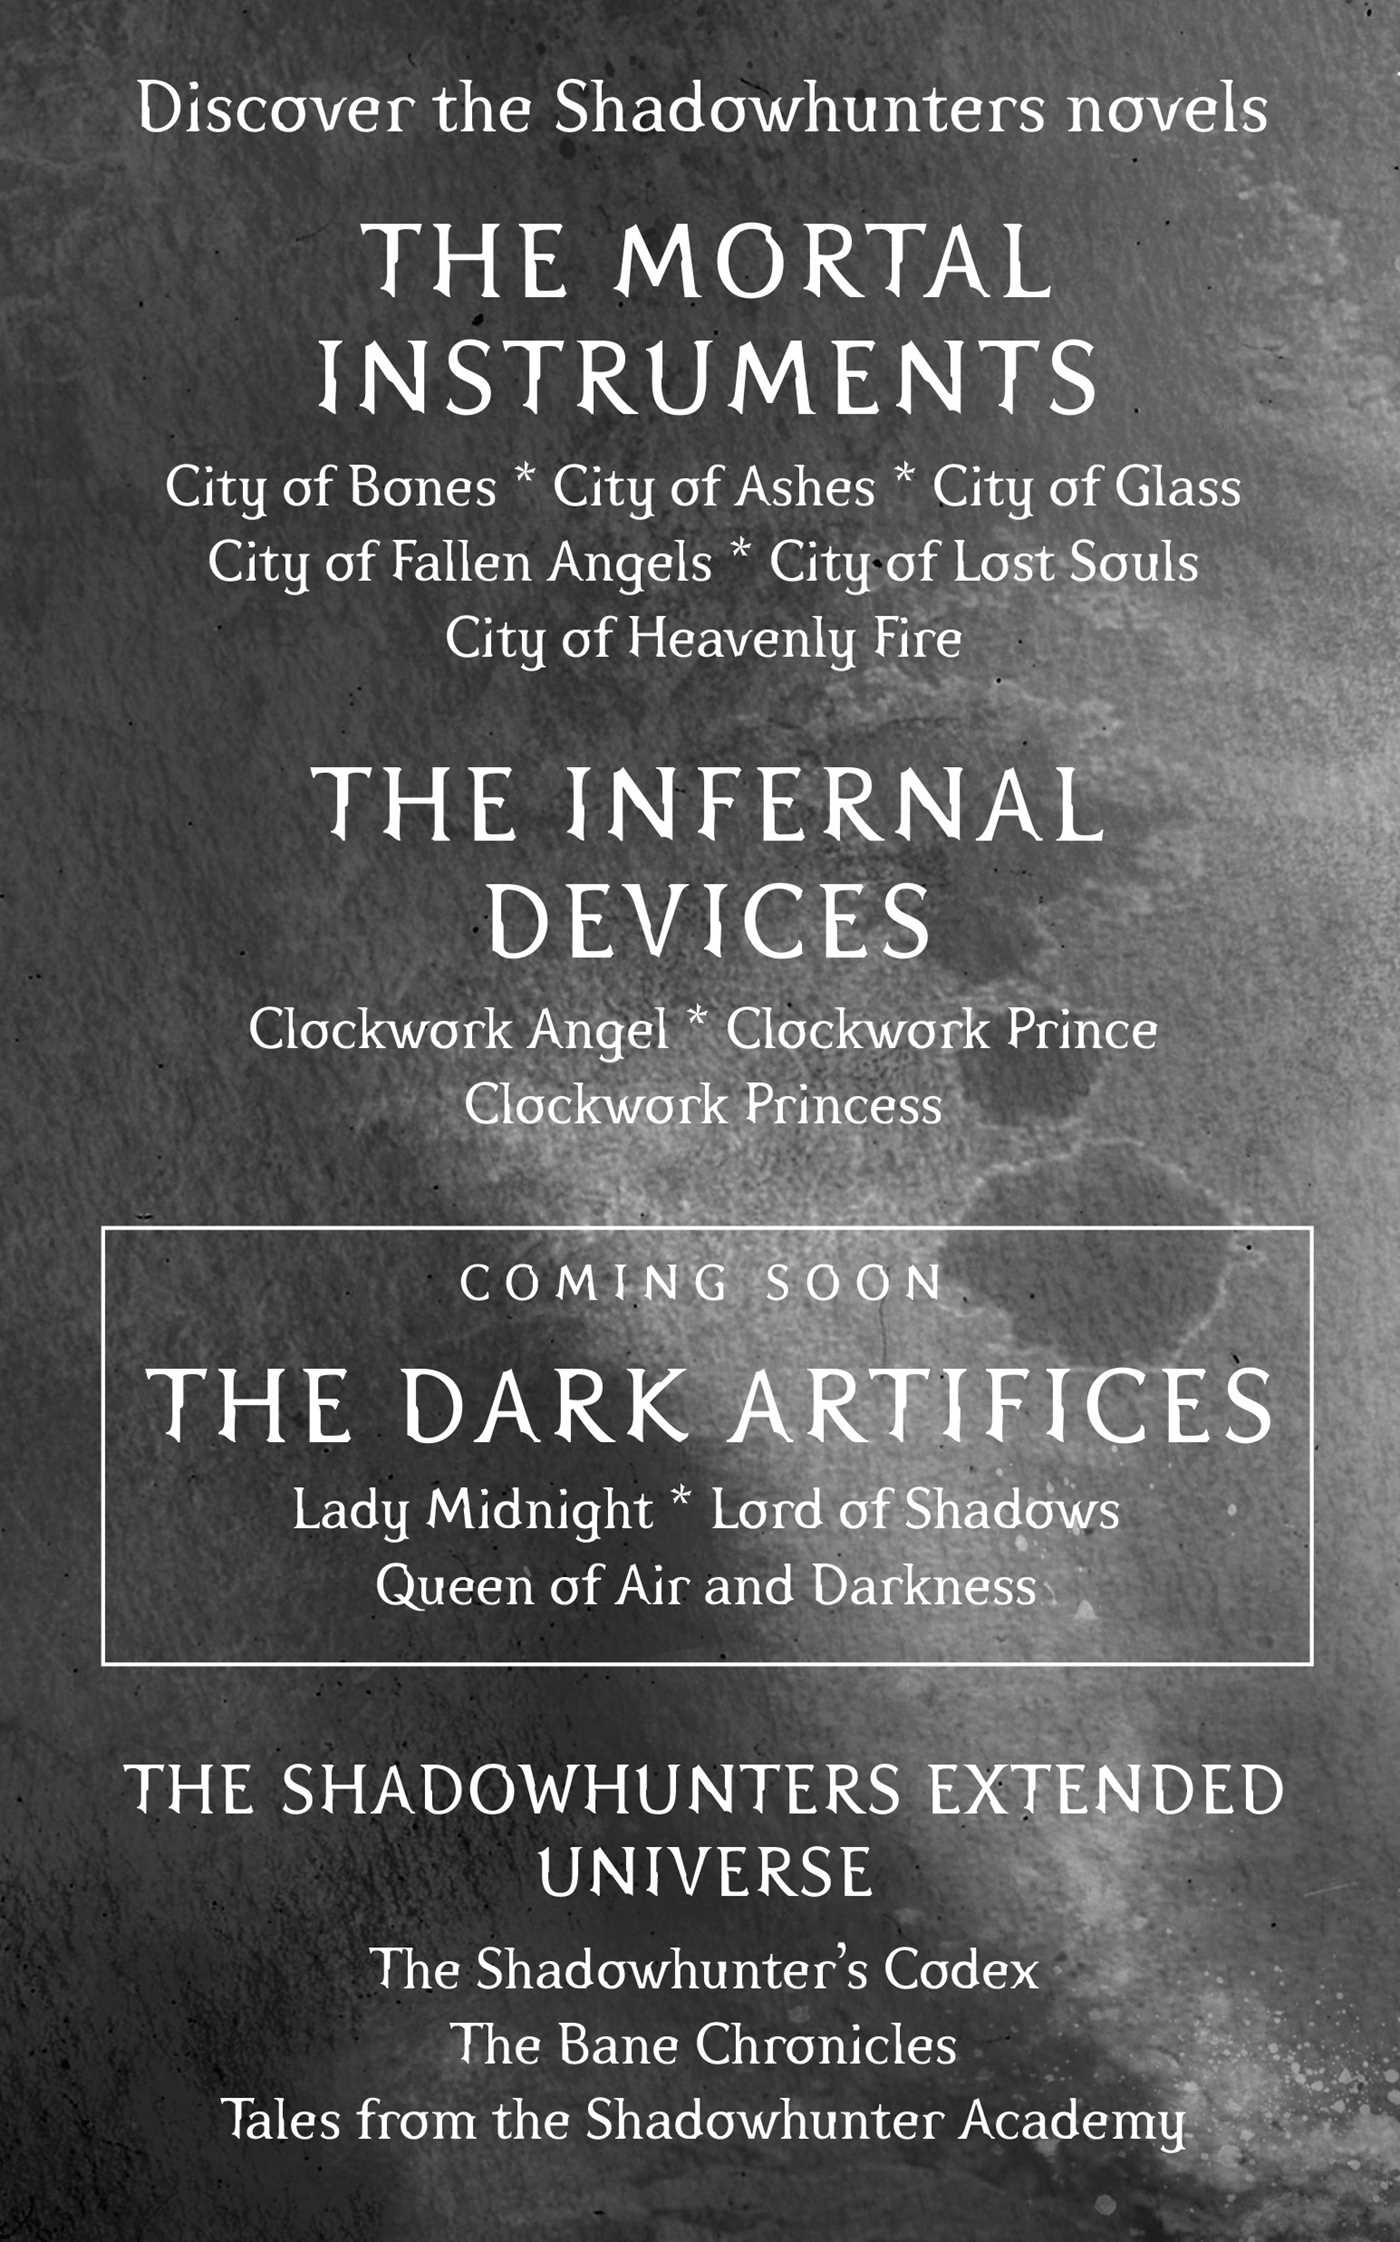 City of bones 9781481455923.in04